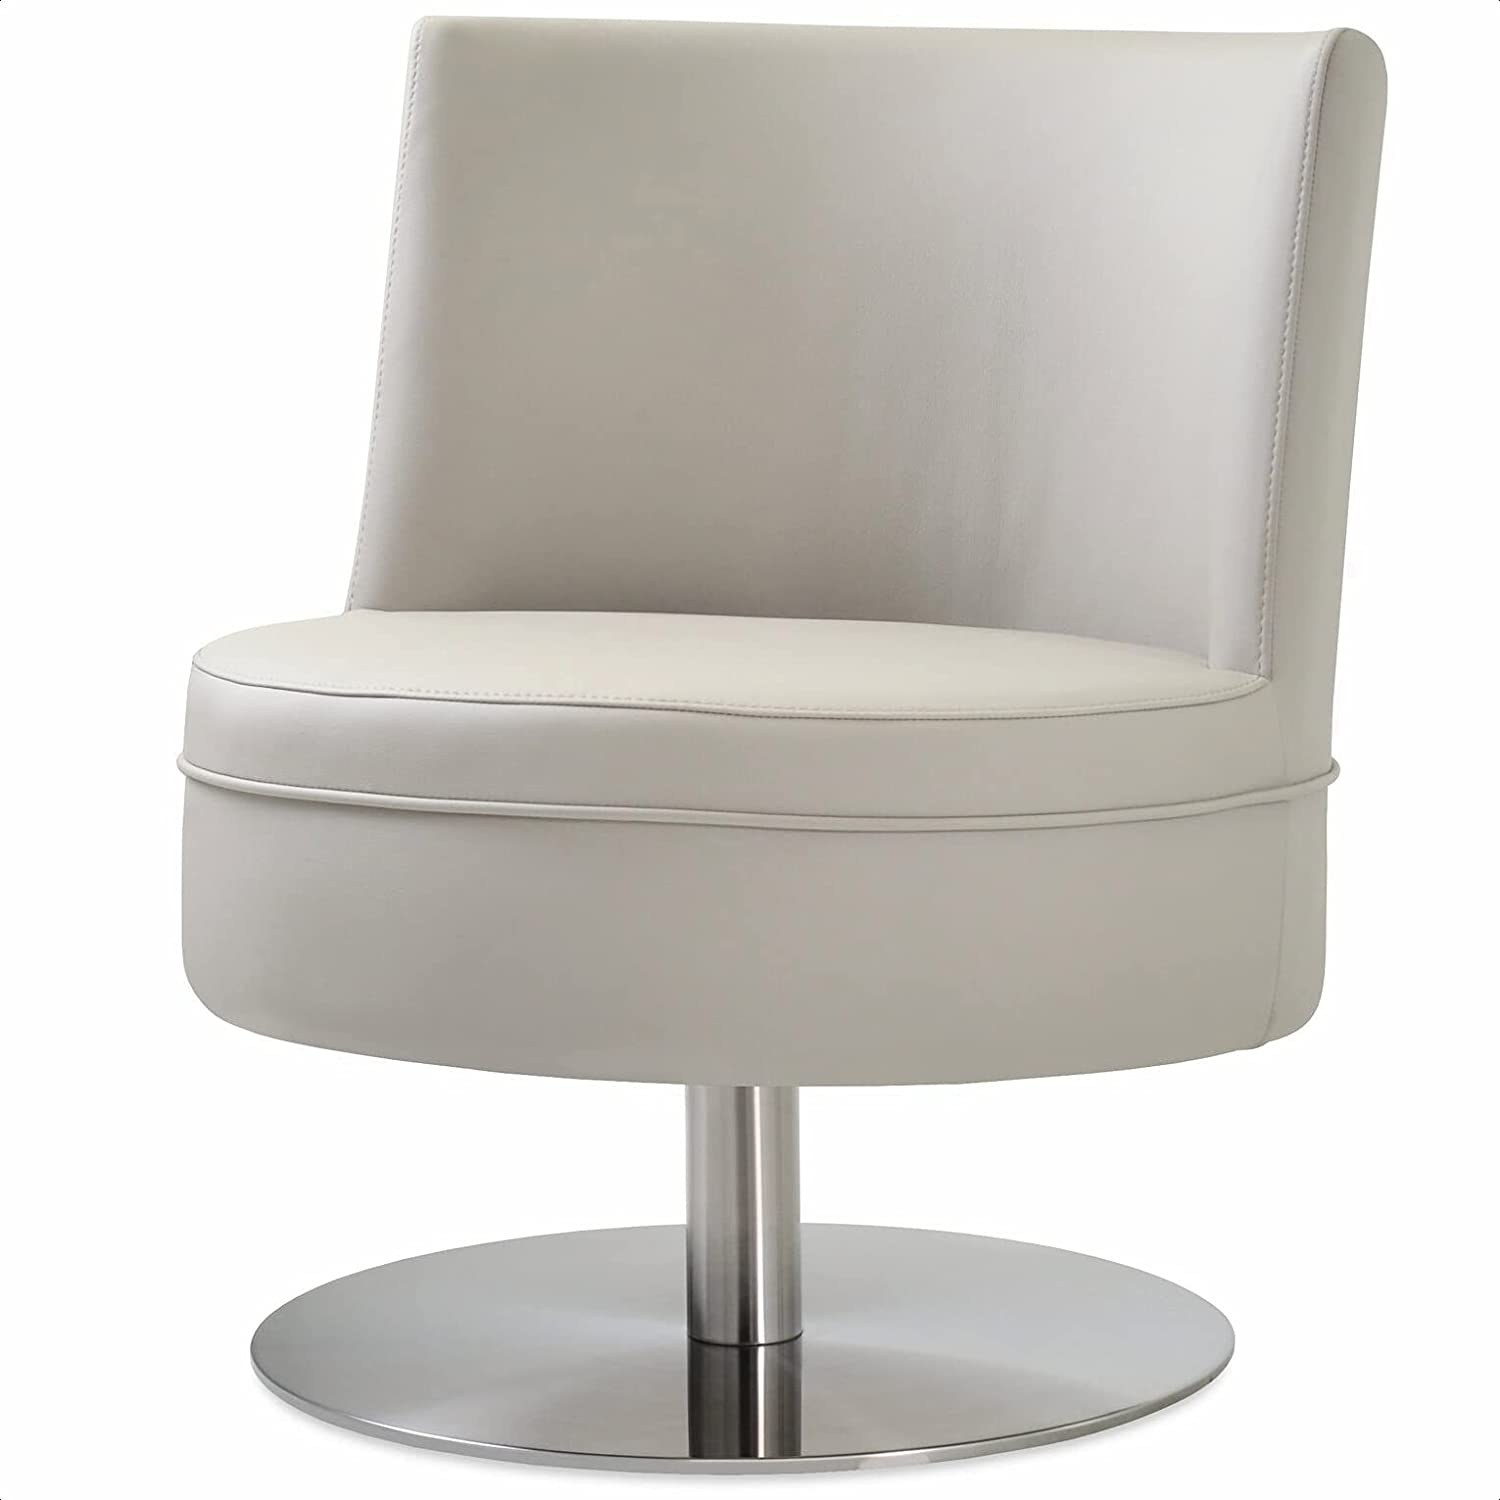 Hilton Swivel Courier shipping free Soldering Barrel Chair Seat Frame Mate Material: Fill Foam